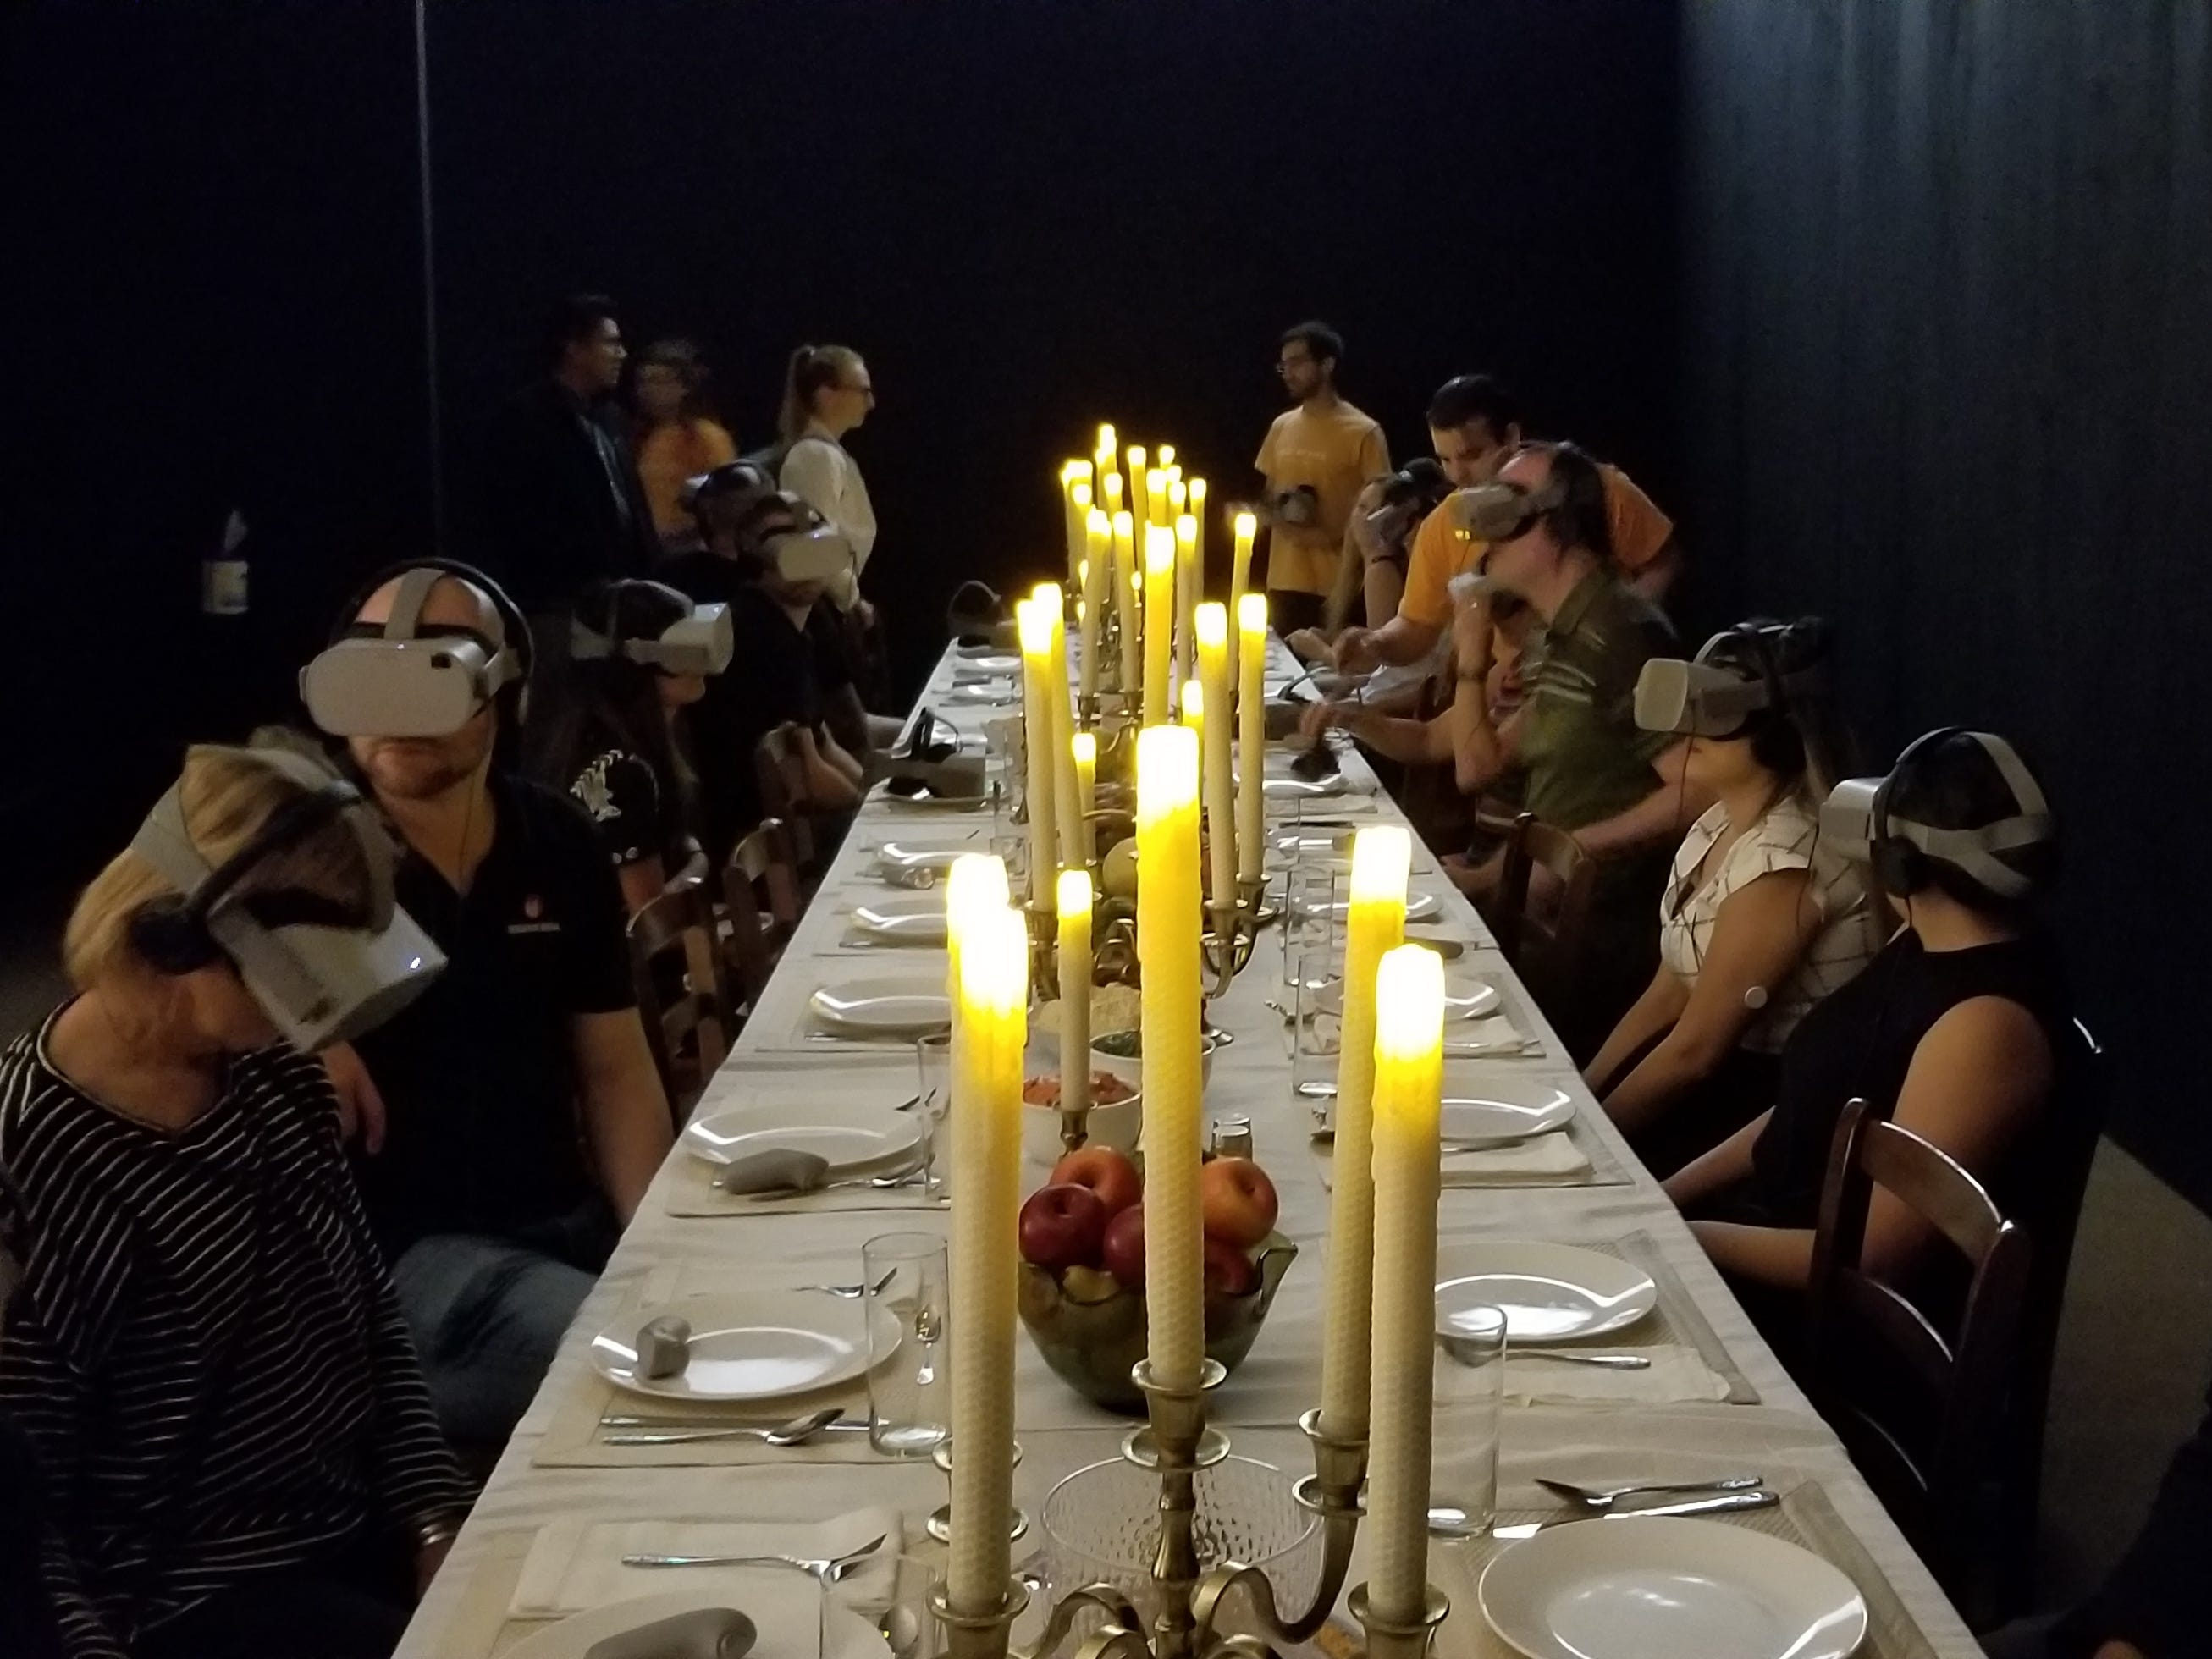 """""""Dinner Party"""" is a virtual reality film by Angel Soto, Laura Wexler and Charlotte Stoudt about the couple who reported the first UFO abduction case in America.  The artwork is part of Wonderspaces Arizona, an immersive art show open April through mid-July 2019 at Scottsdale Fashion Square."""